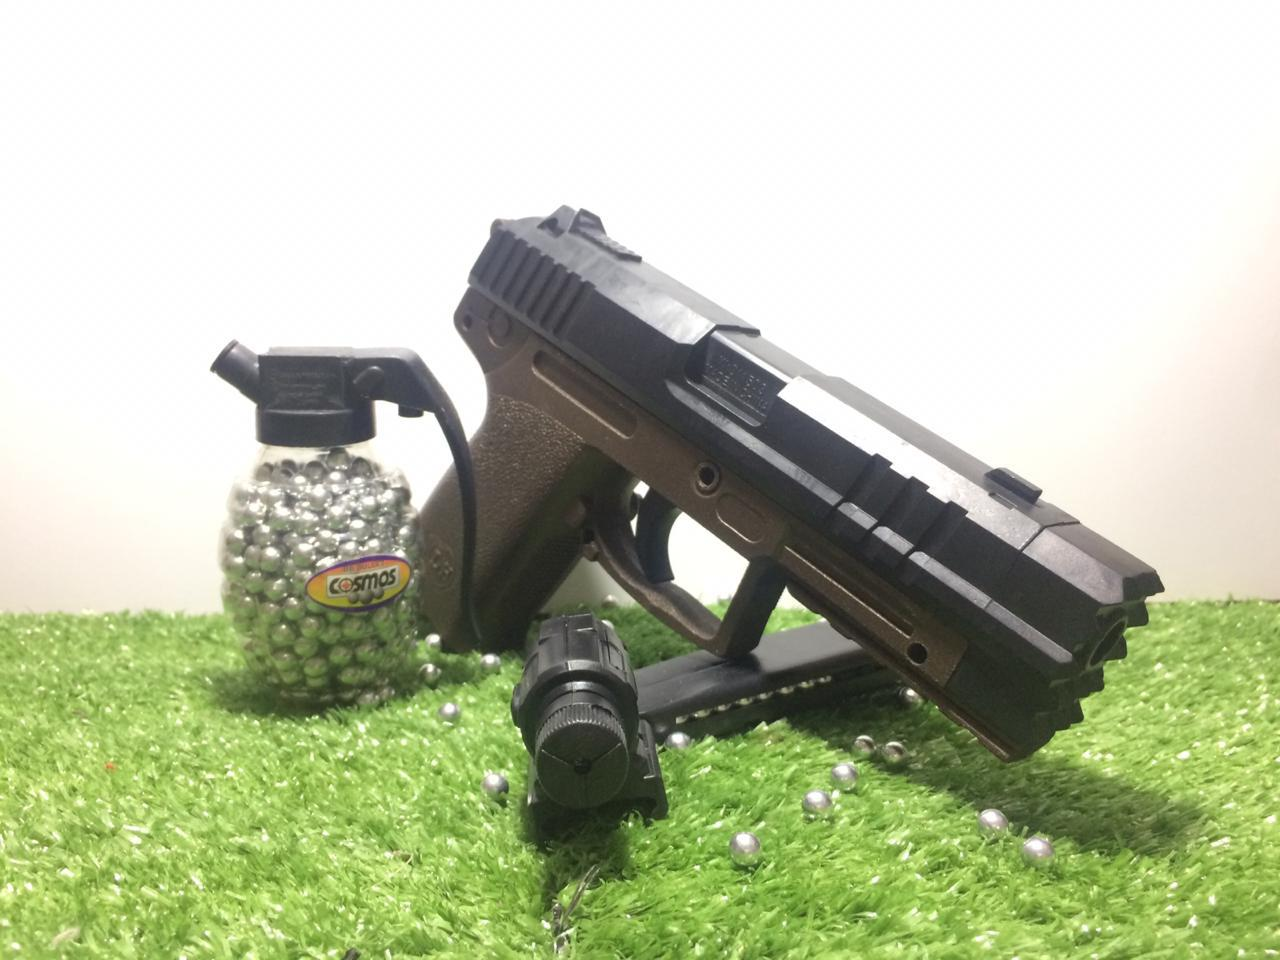 Buy Sell Cheapest Got It Glock Best Quality Product Deals Sarung Pistol Holster Tempat Airsoft Makarov Airsoftgun Baretta Hk Usp Spring Laser Pemberat Bb 500 Pcs